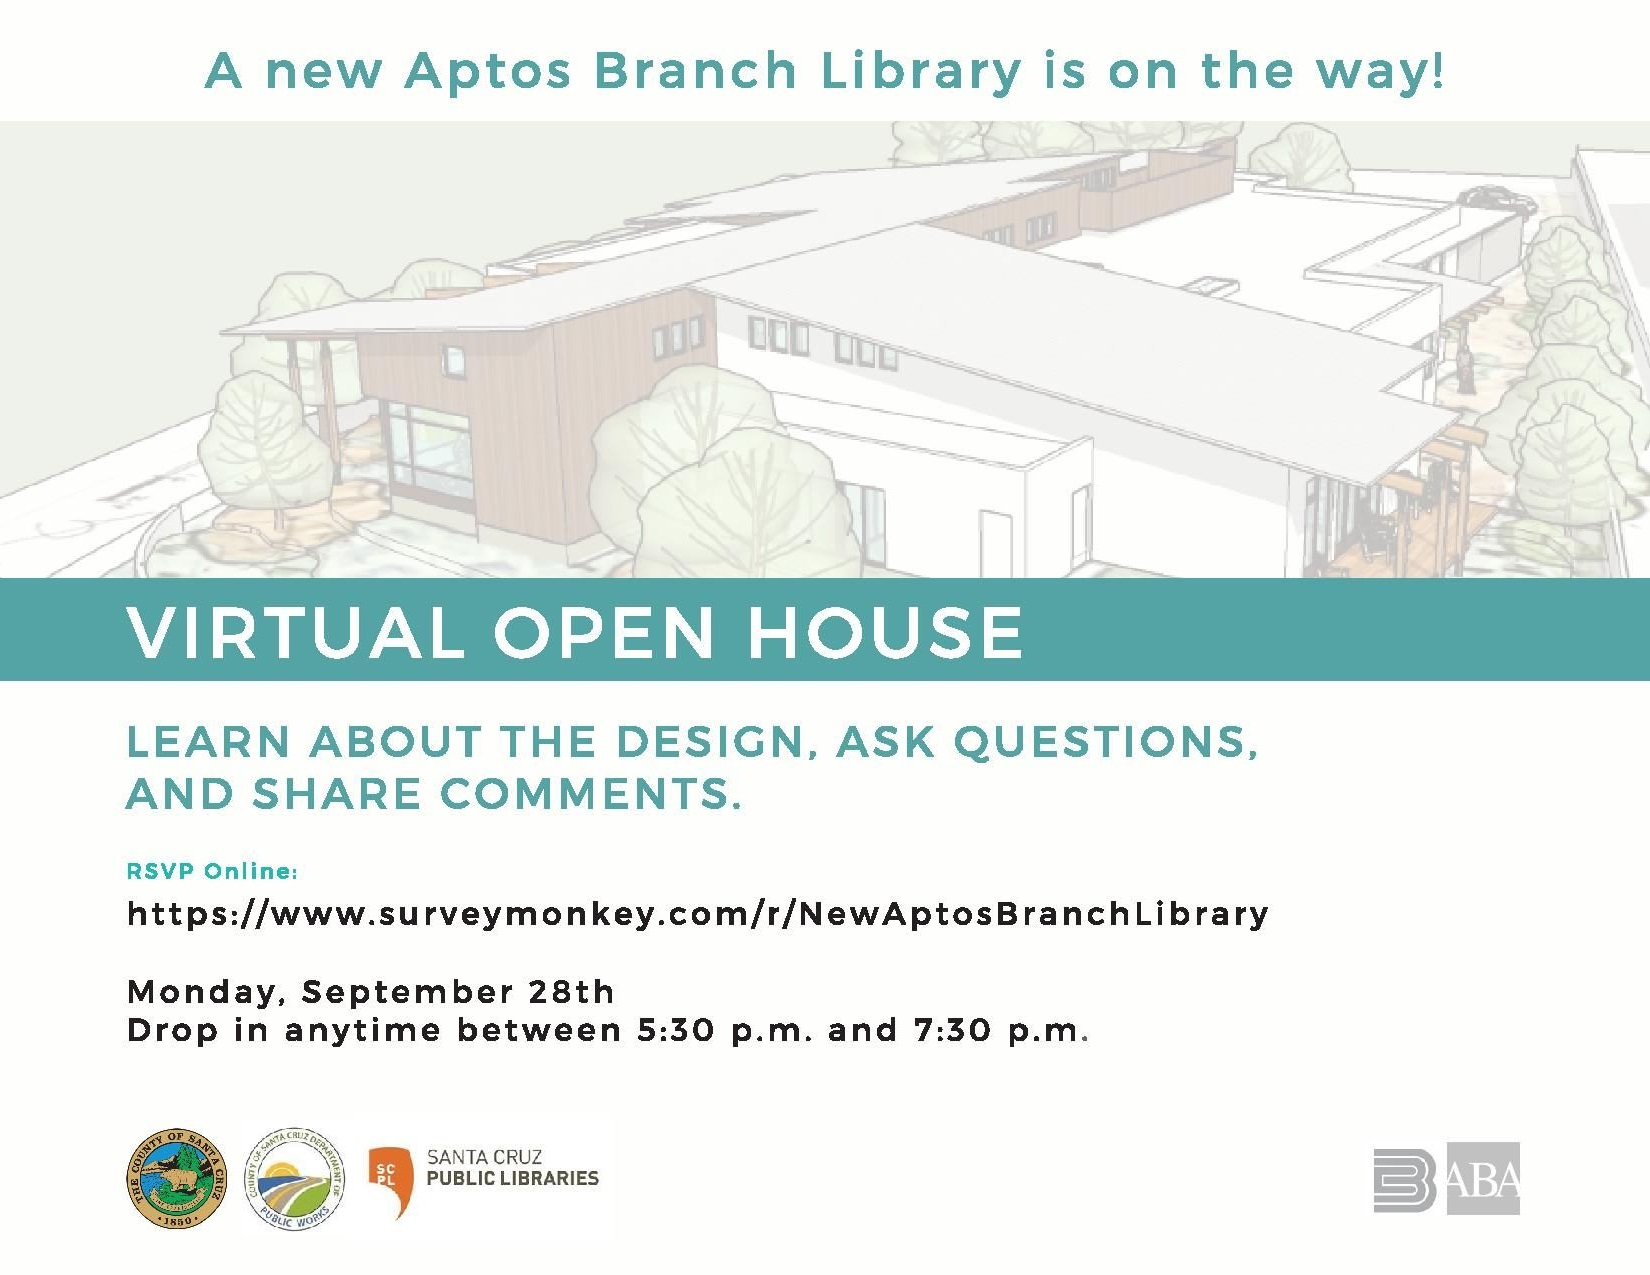 A new Aptos Branch Library is on the way! Aptos Branch Library - Virtual Open House/: